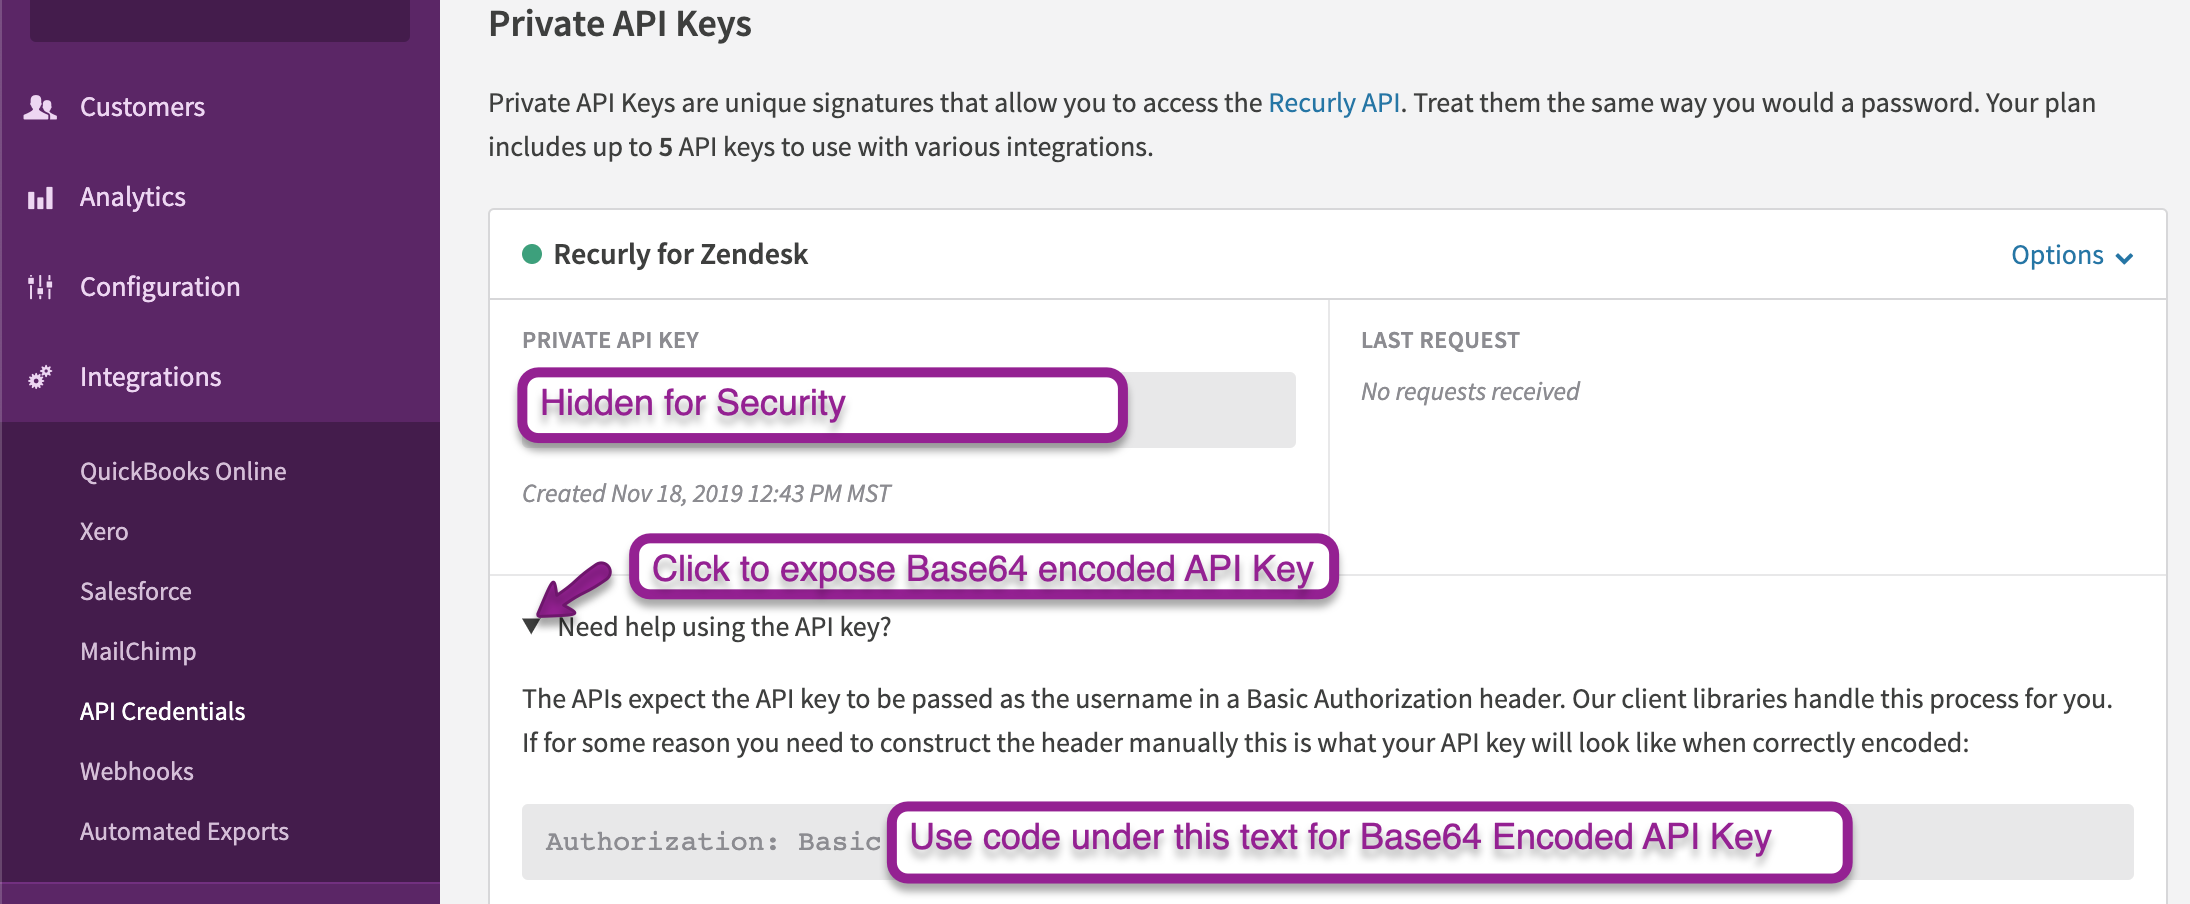 Follow the steps above to access your Base64 encoded API key to enter into the Zendesk interface